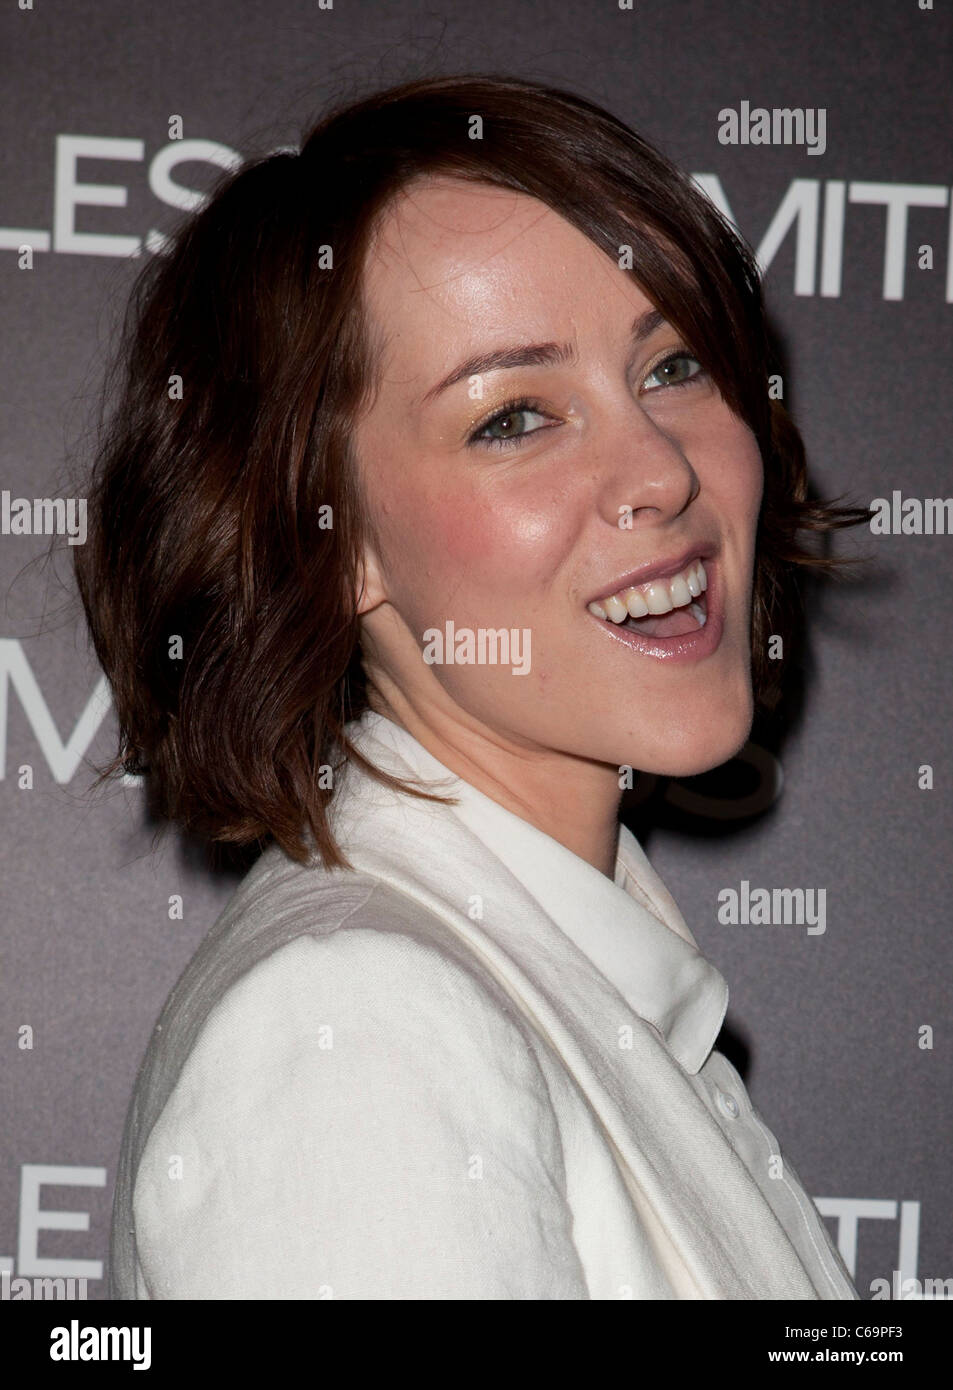 Jena Malone at arrivals for LIMITLESS Premiere, Arclight Hollywood, Los Angeles, CA March 3, 2011. Photo By: Emiley - Stock Image